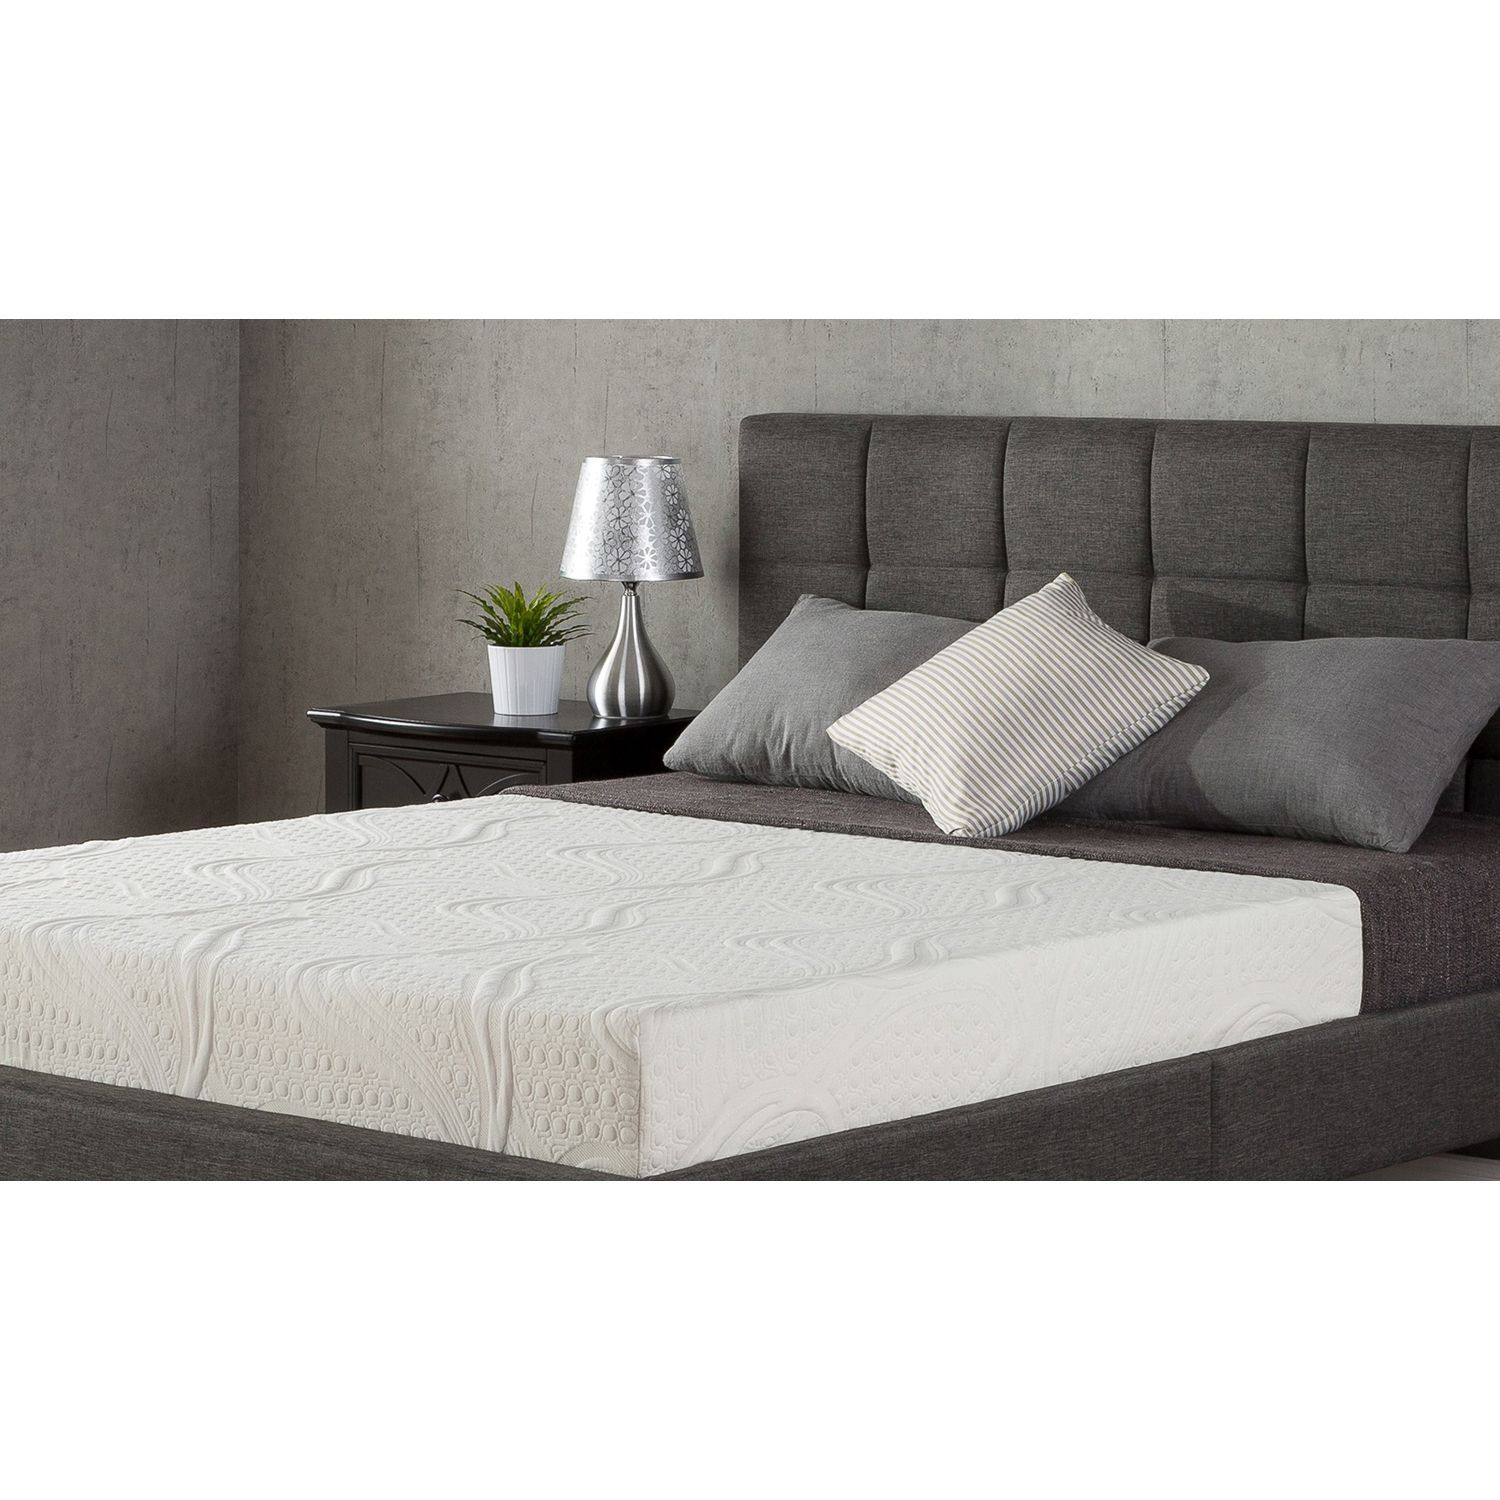 Night Therapy Memory Foam 8 Inch Pressure Relief Queen Mattress